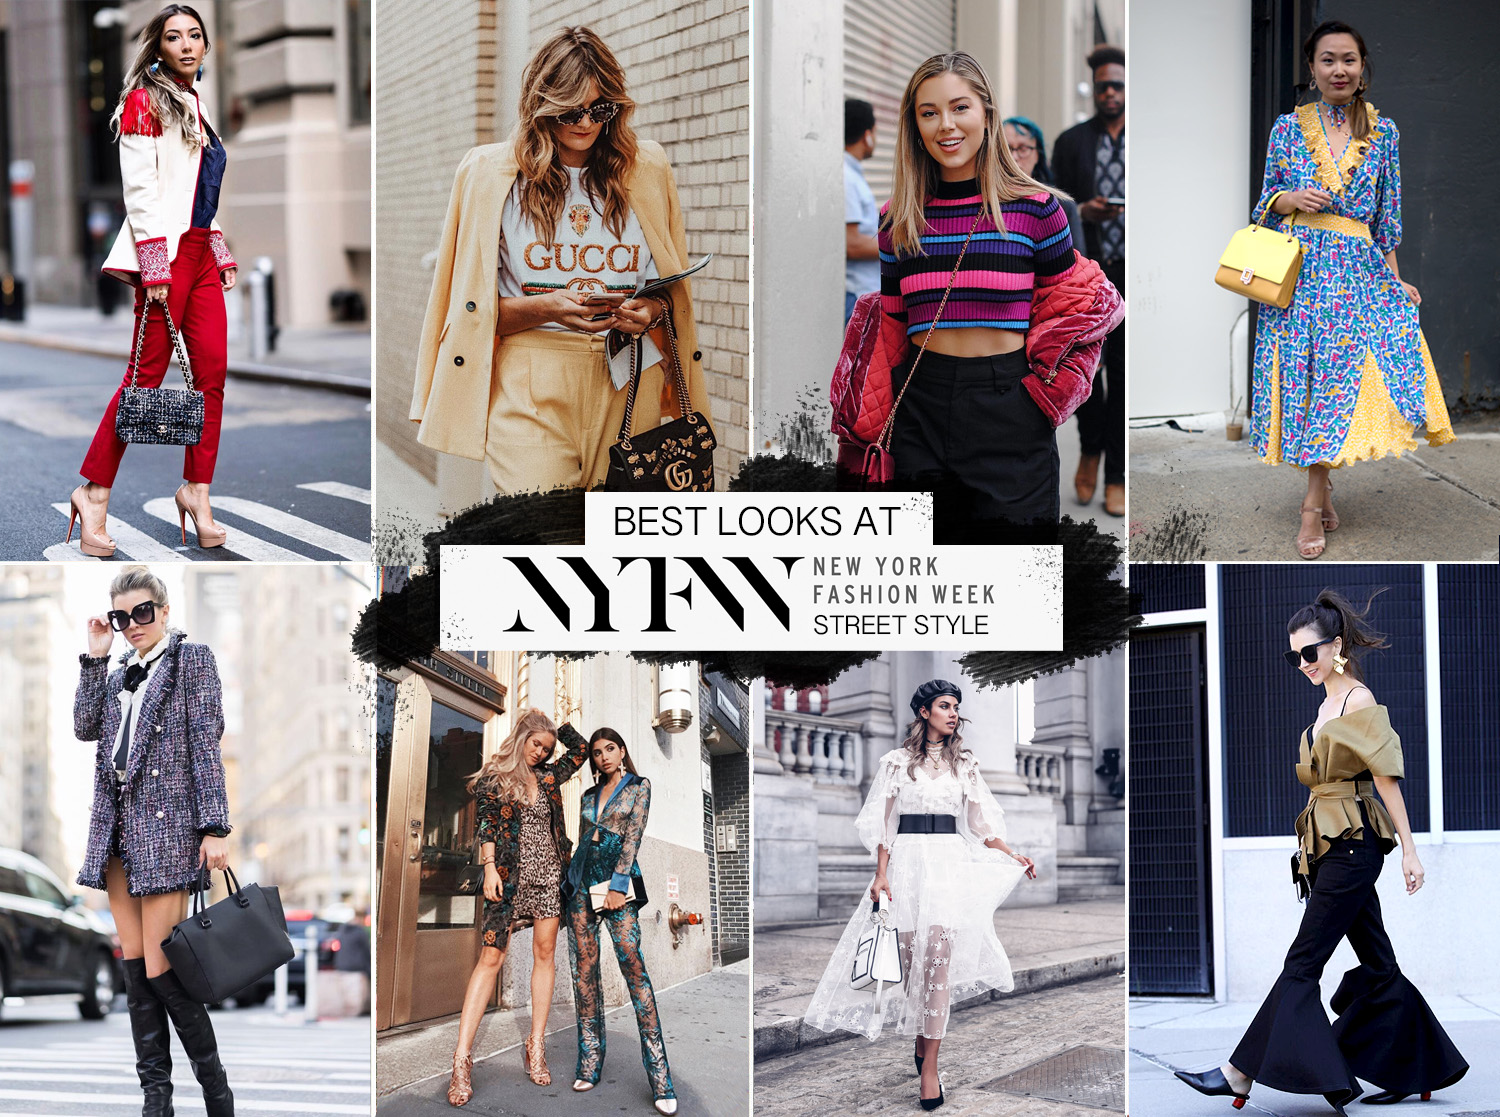 NYFW bloggers streetstyle best looks SS 2018, September 2017. Influencers style during New York Fashion Week.